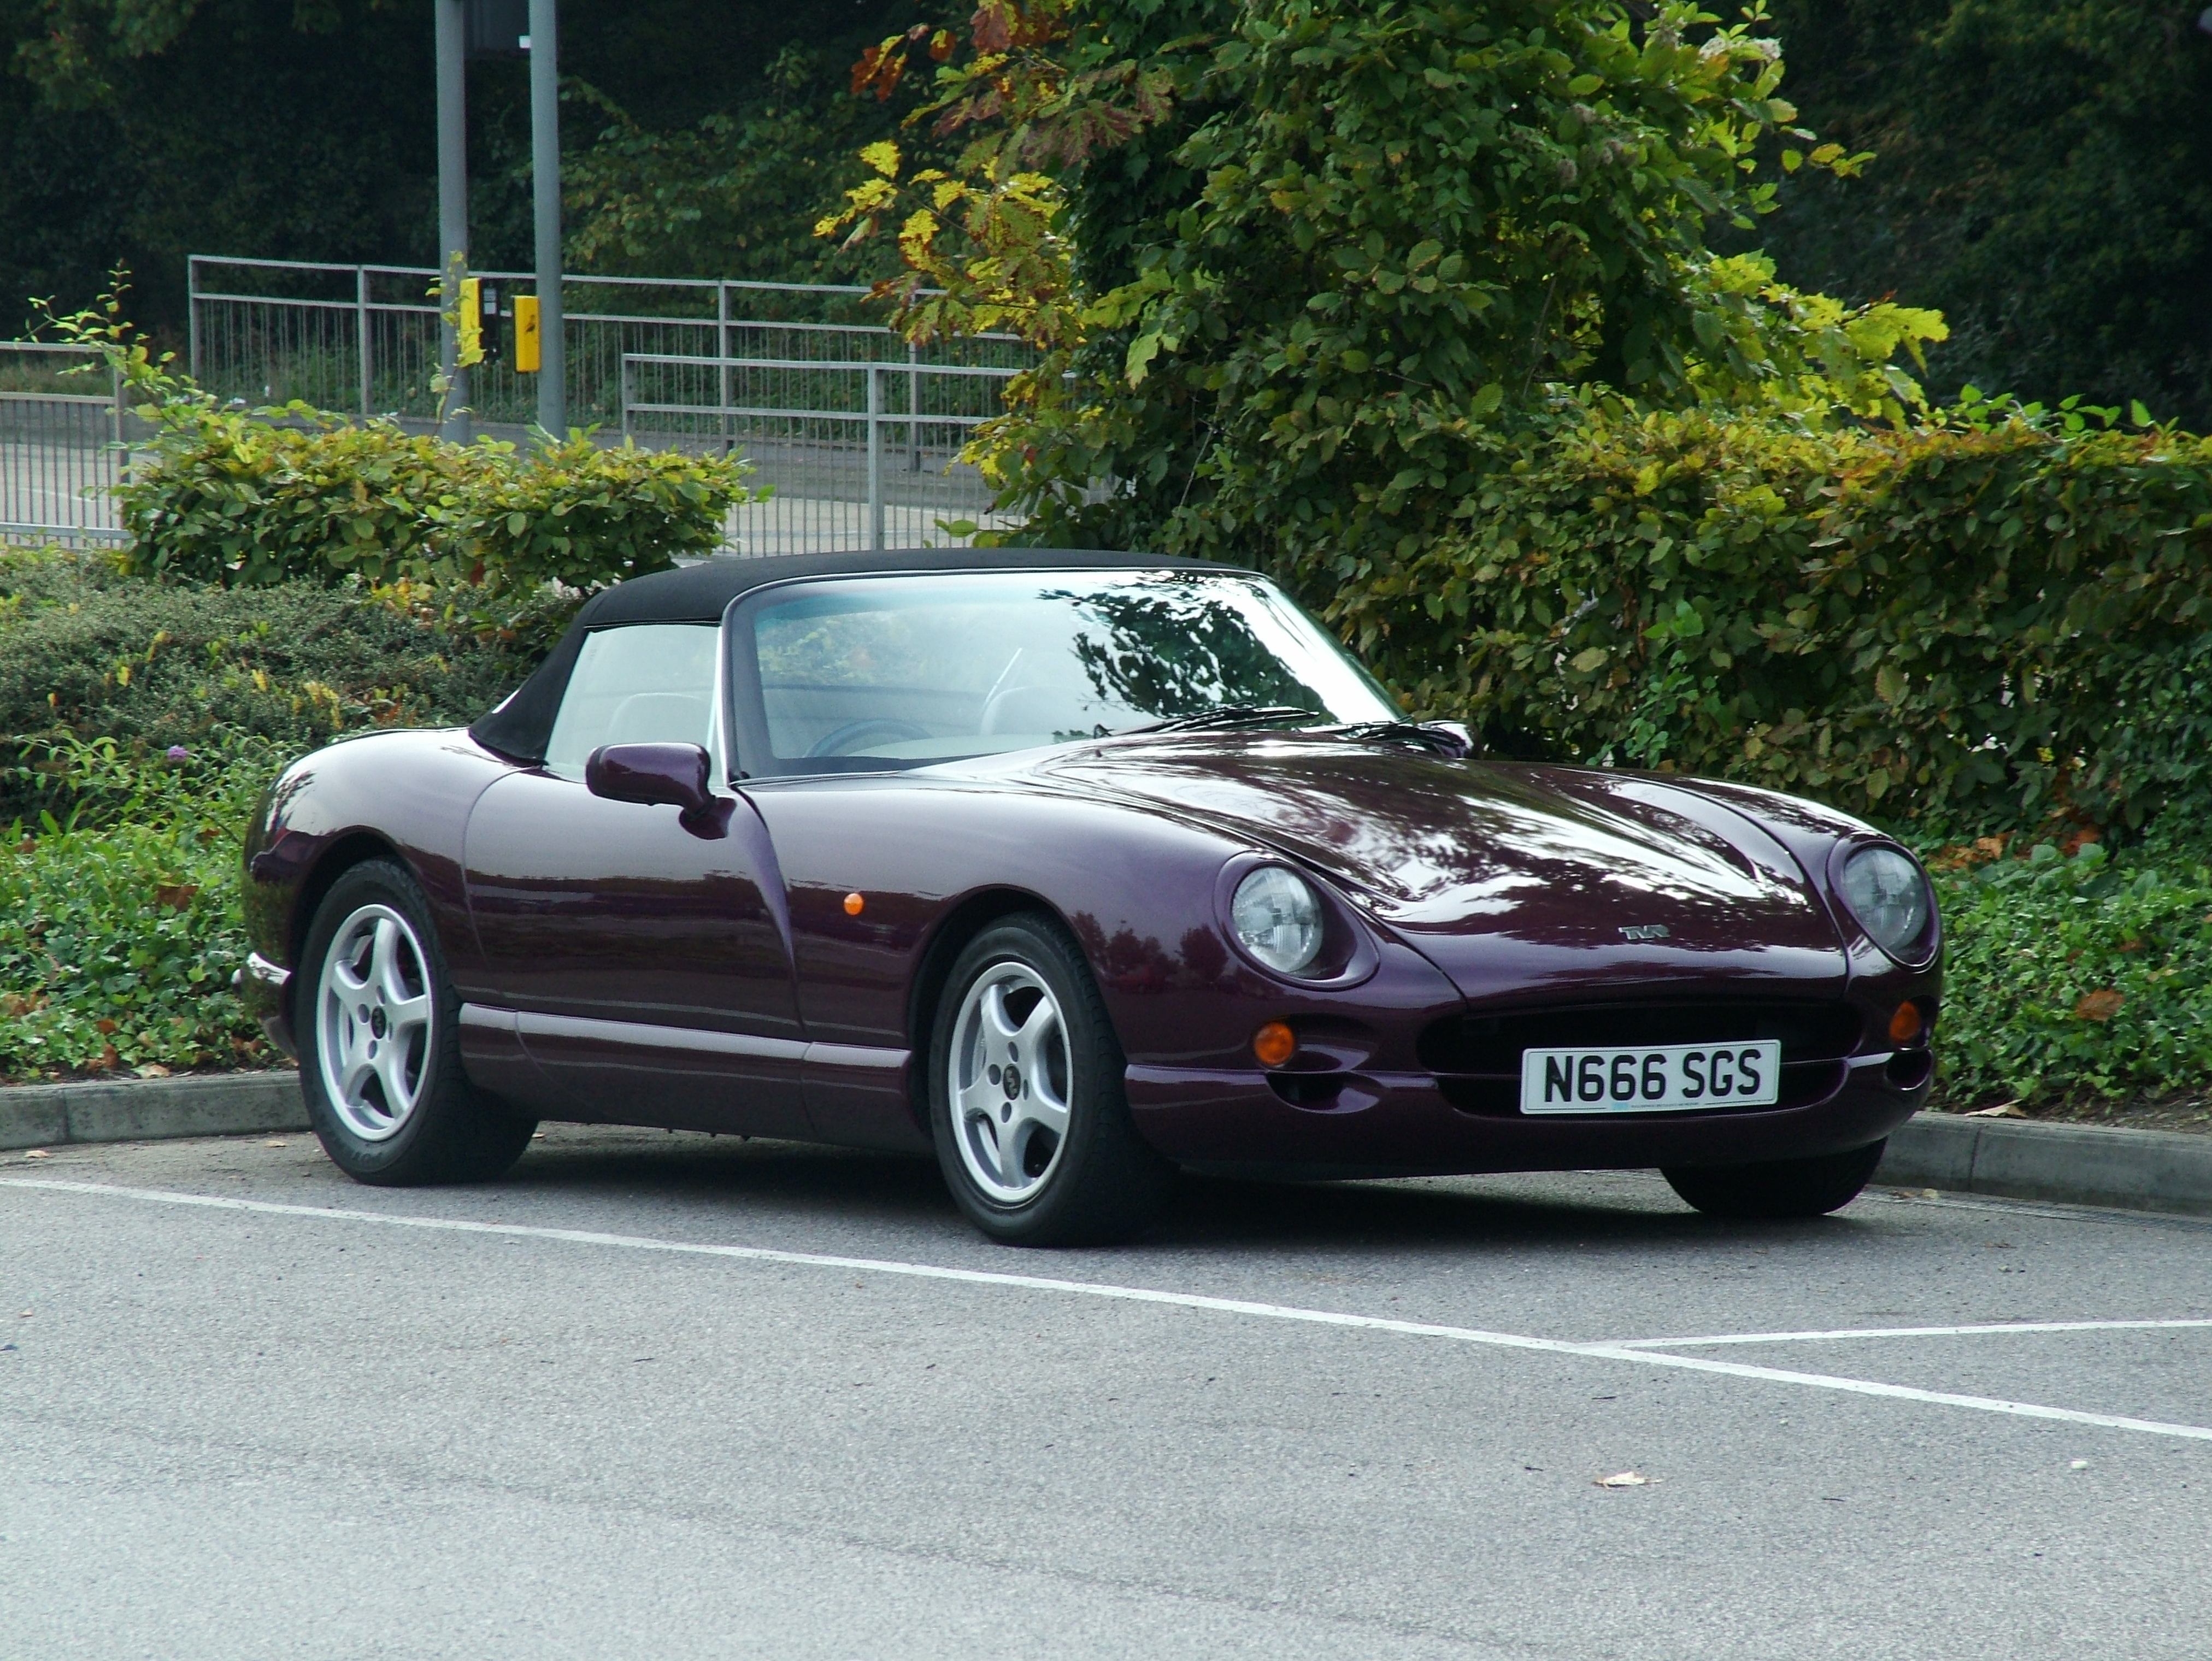 1997 TVR Griffith #1